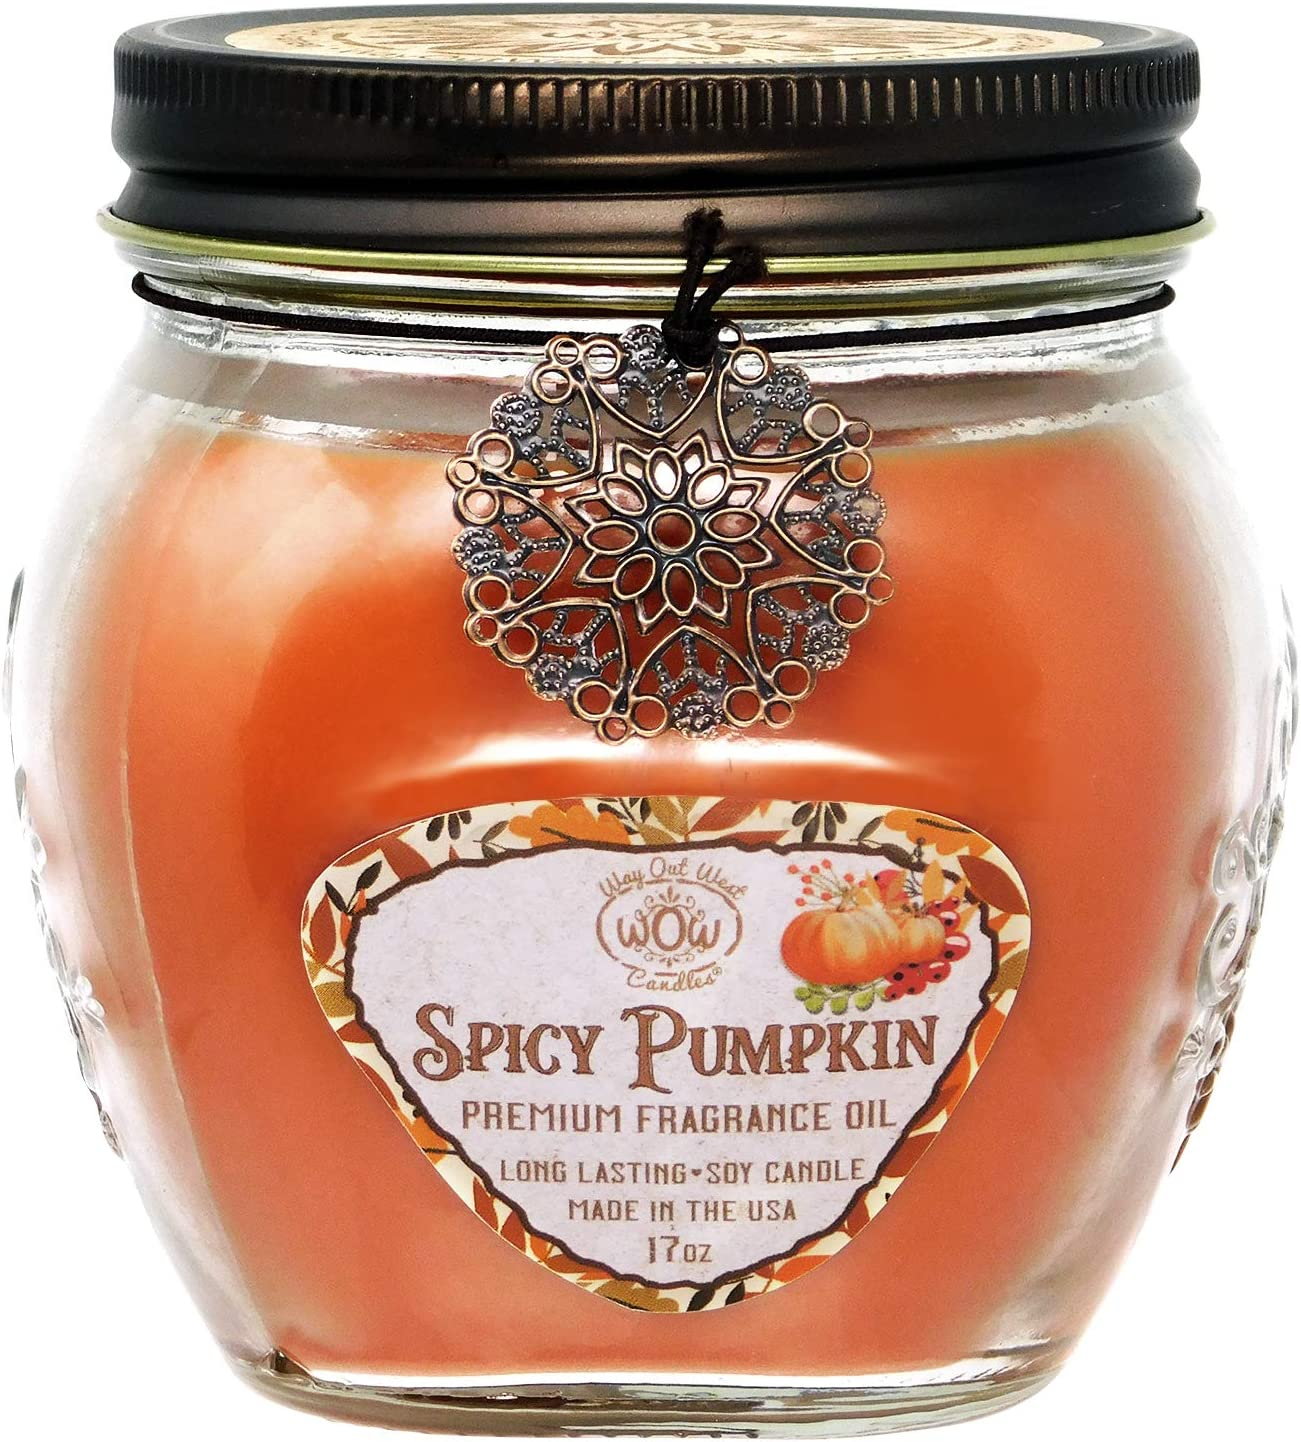 Way Out West Spicy Pumpkin Jar Candle - Large 17 Ounce - Fragrant & Long Lasting Soy Wax Blend - Perfect Fall Candle - Smells Like Moms Very Best Pumpkin Pie! Makes a Great Housewarming Gift